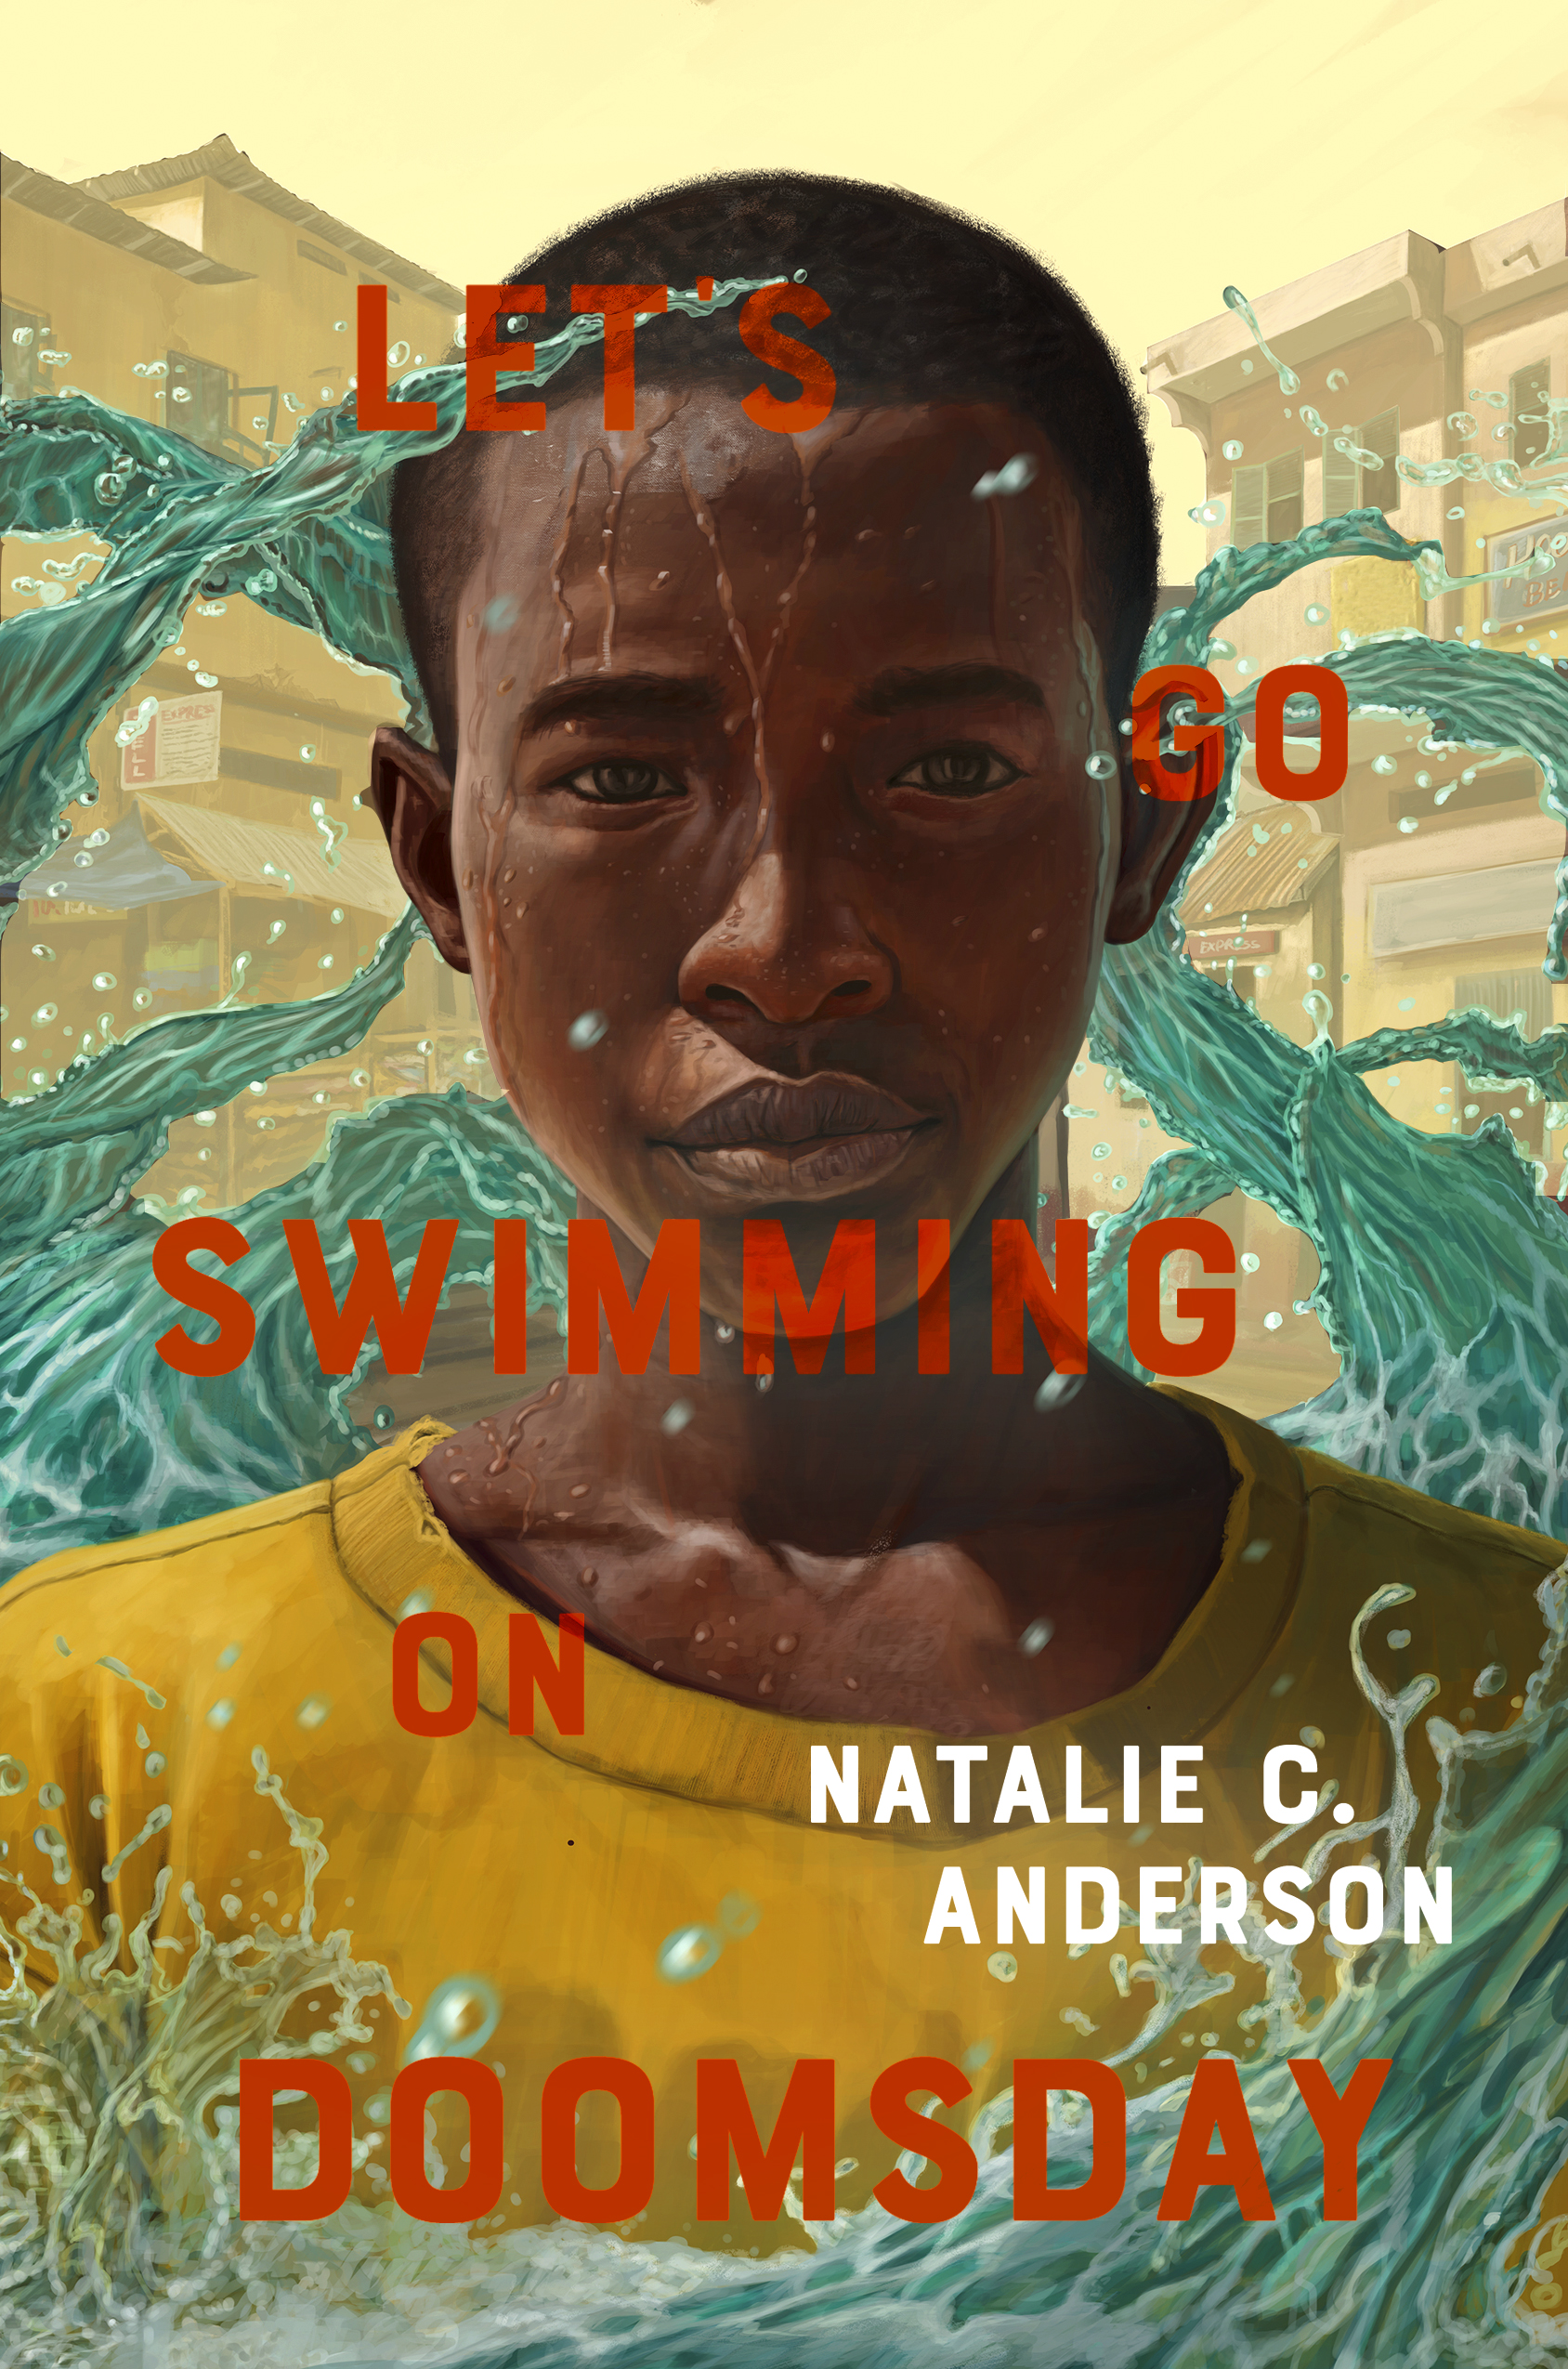 Let's Go Swimming on Doomsday  by Natalie C. Anderson  Putnam —- January 15, 2019